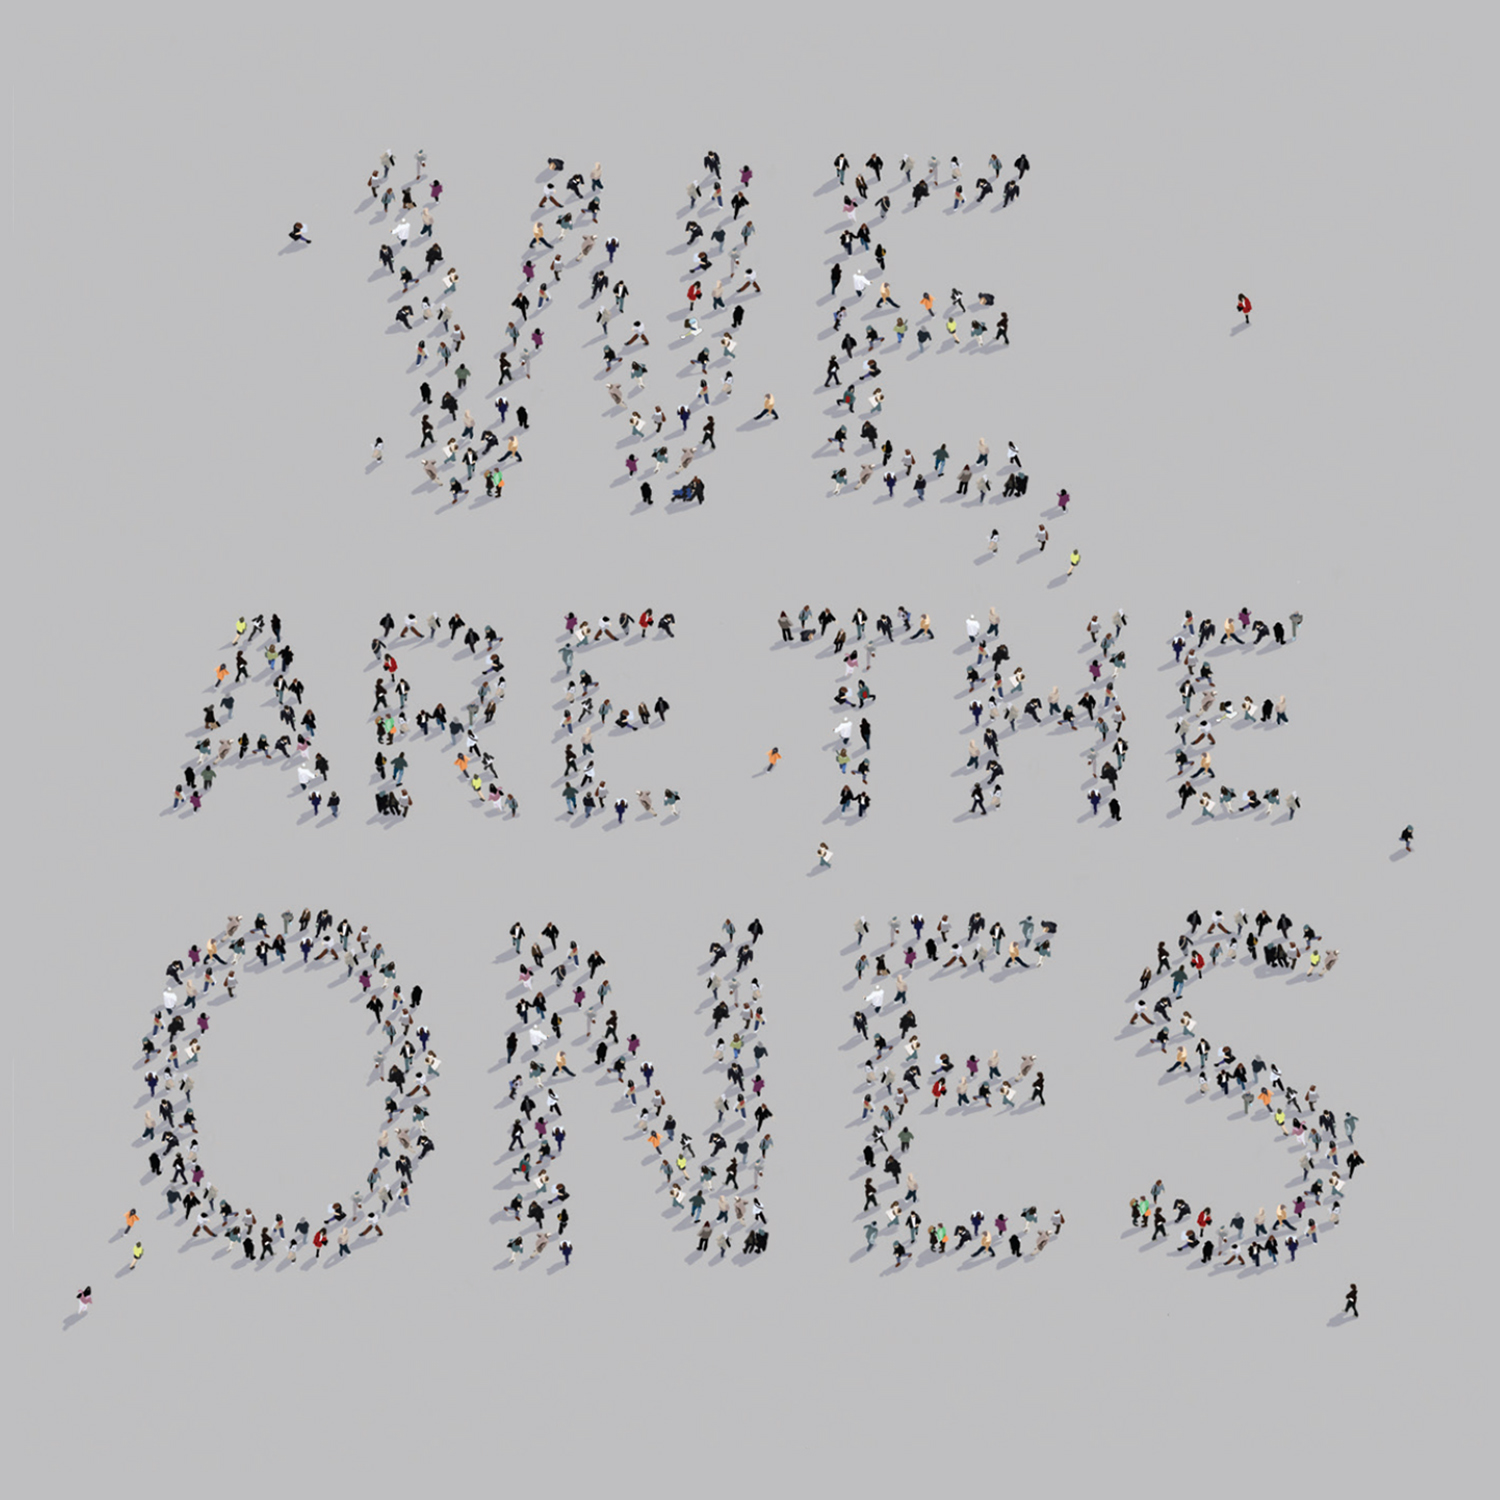 Gavin Chappell-Bates - We Are The Ones album cover 1500 x 1500 px